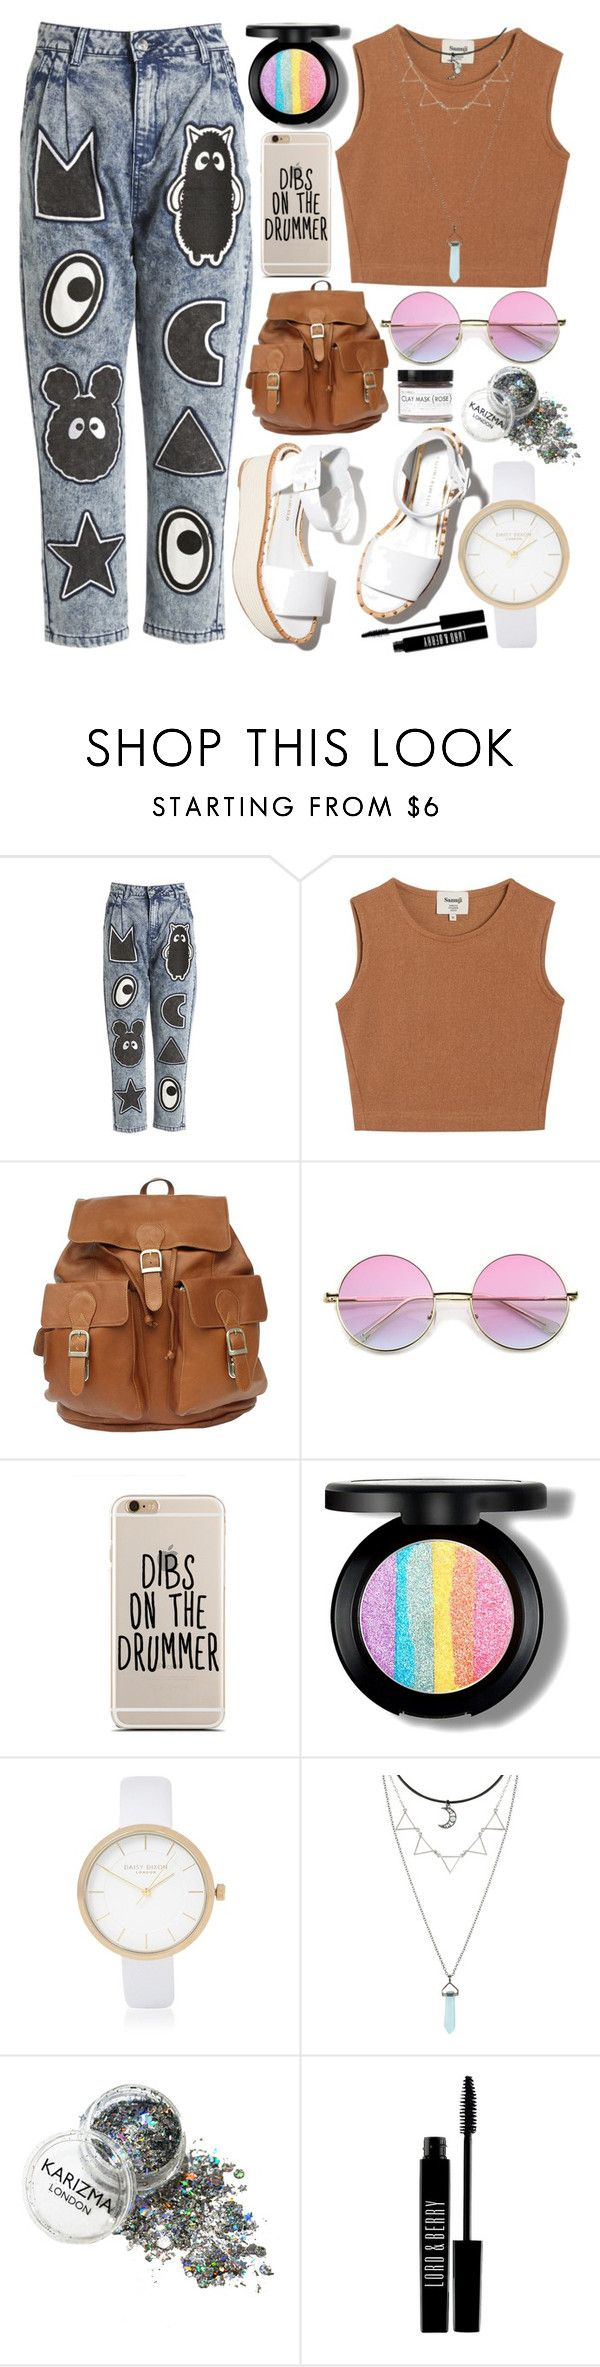 """""""Untitled #762"""" by natallie ❤ liked on Polyvore featuring Mini Cream, Samuji, Paloma Barceló, River Island, Lord & Berry and Fig+Yarrow"""